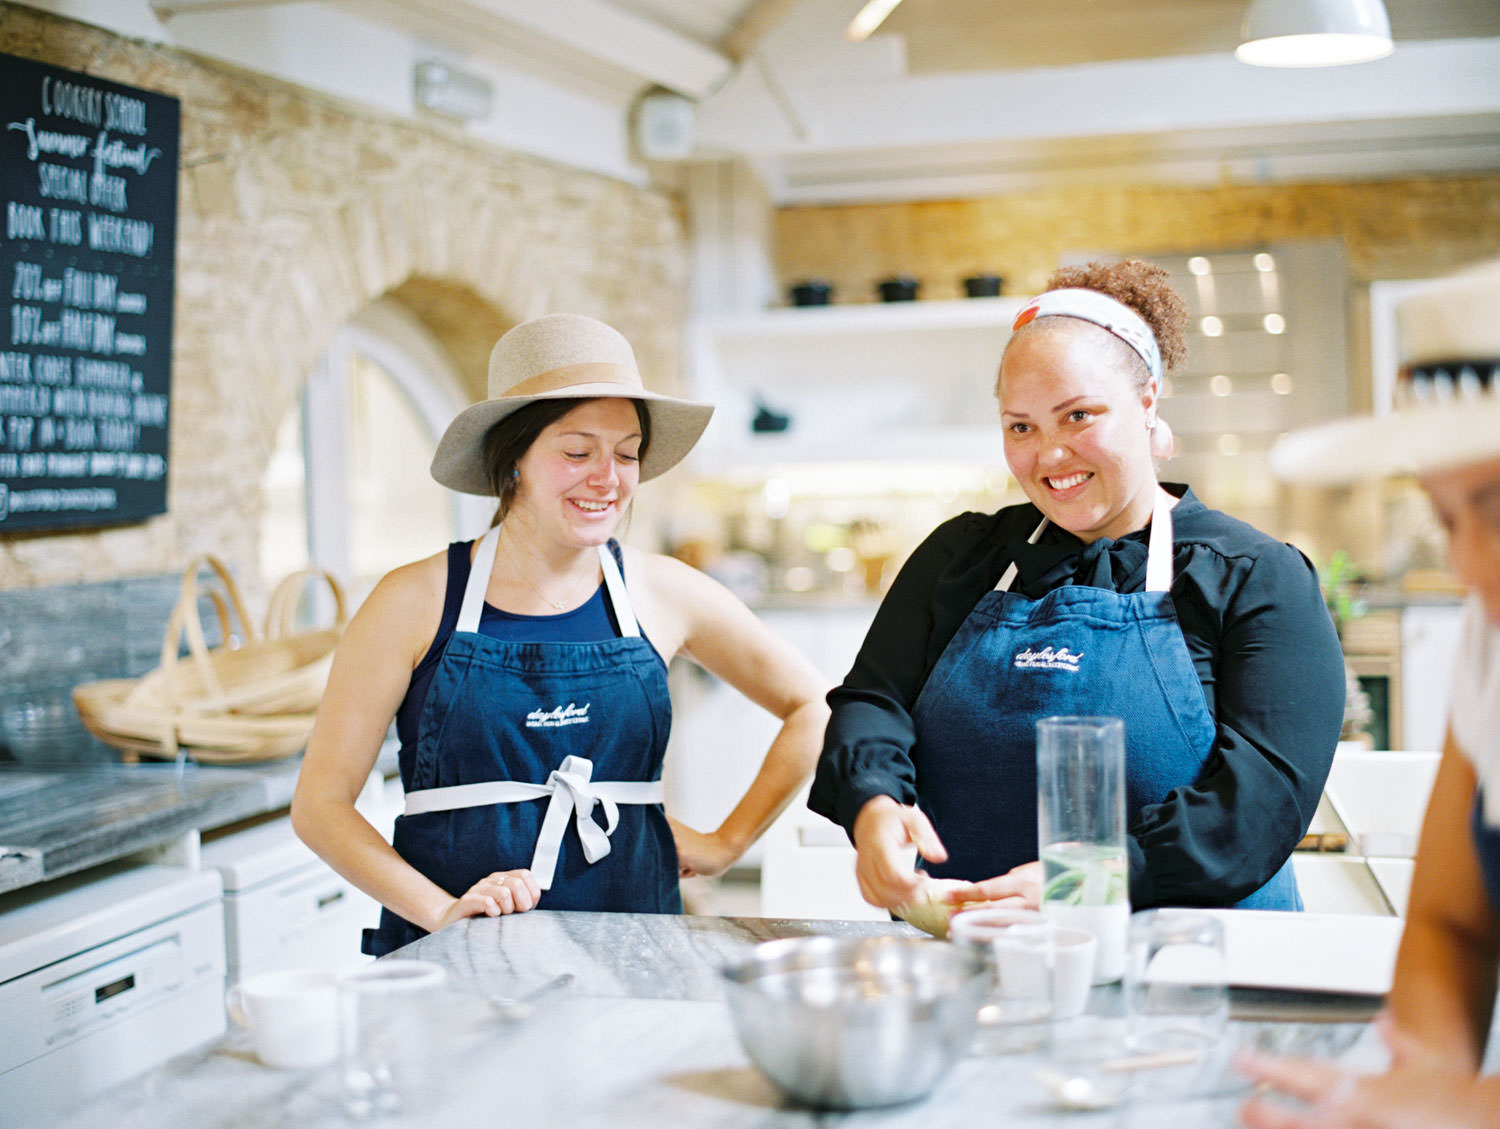 Daylesford Farm women making pasta dough during a cooking lesson. Flutter Magazine Retreat in the Cotswolds, England. Photo by Cavin Elizabeth Photography on film